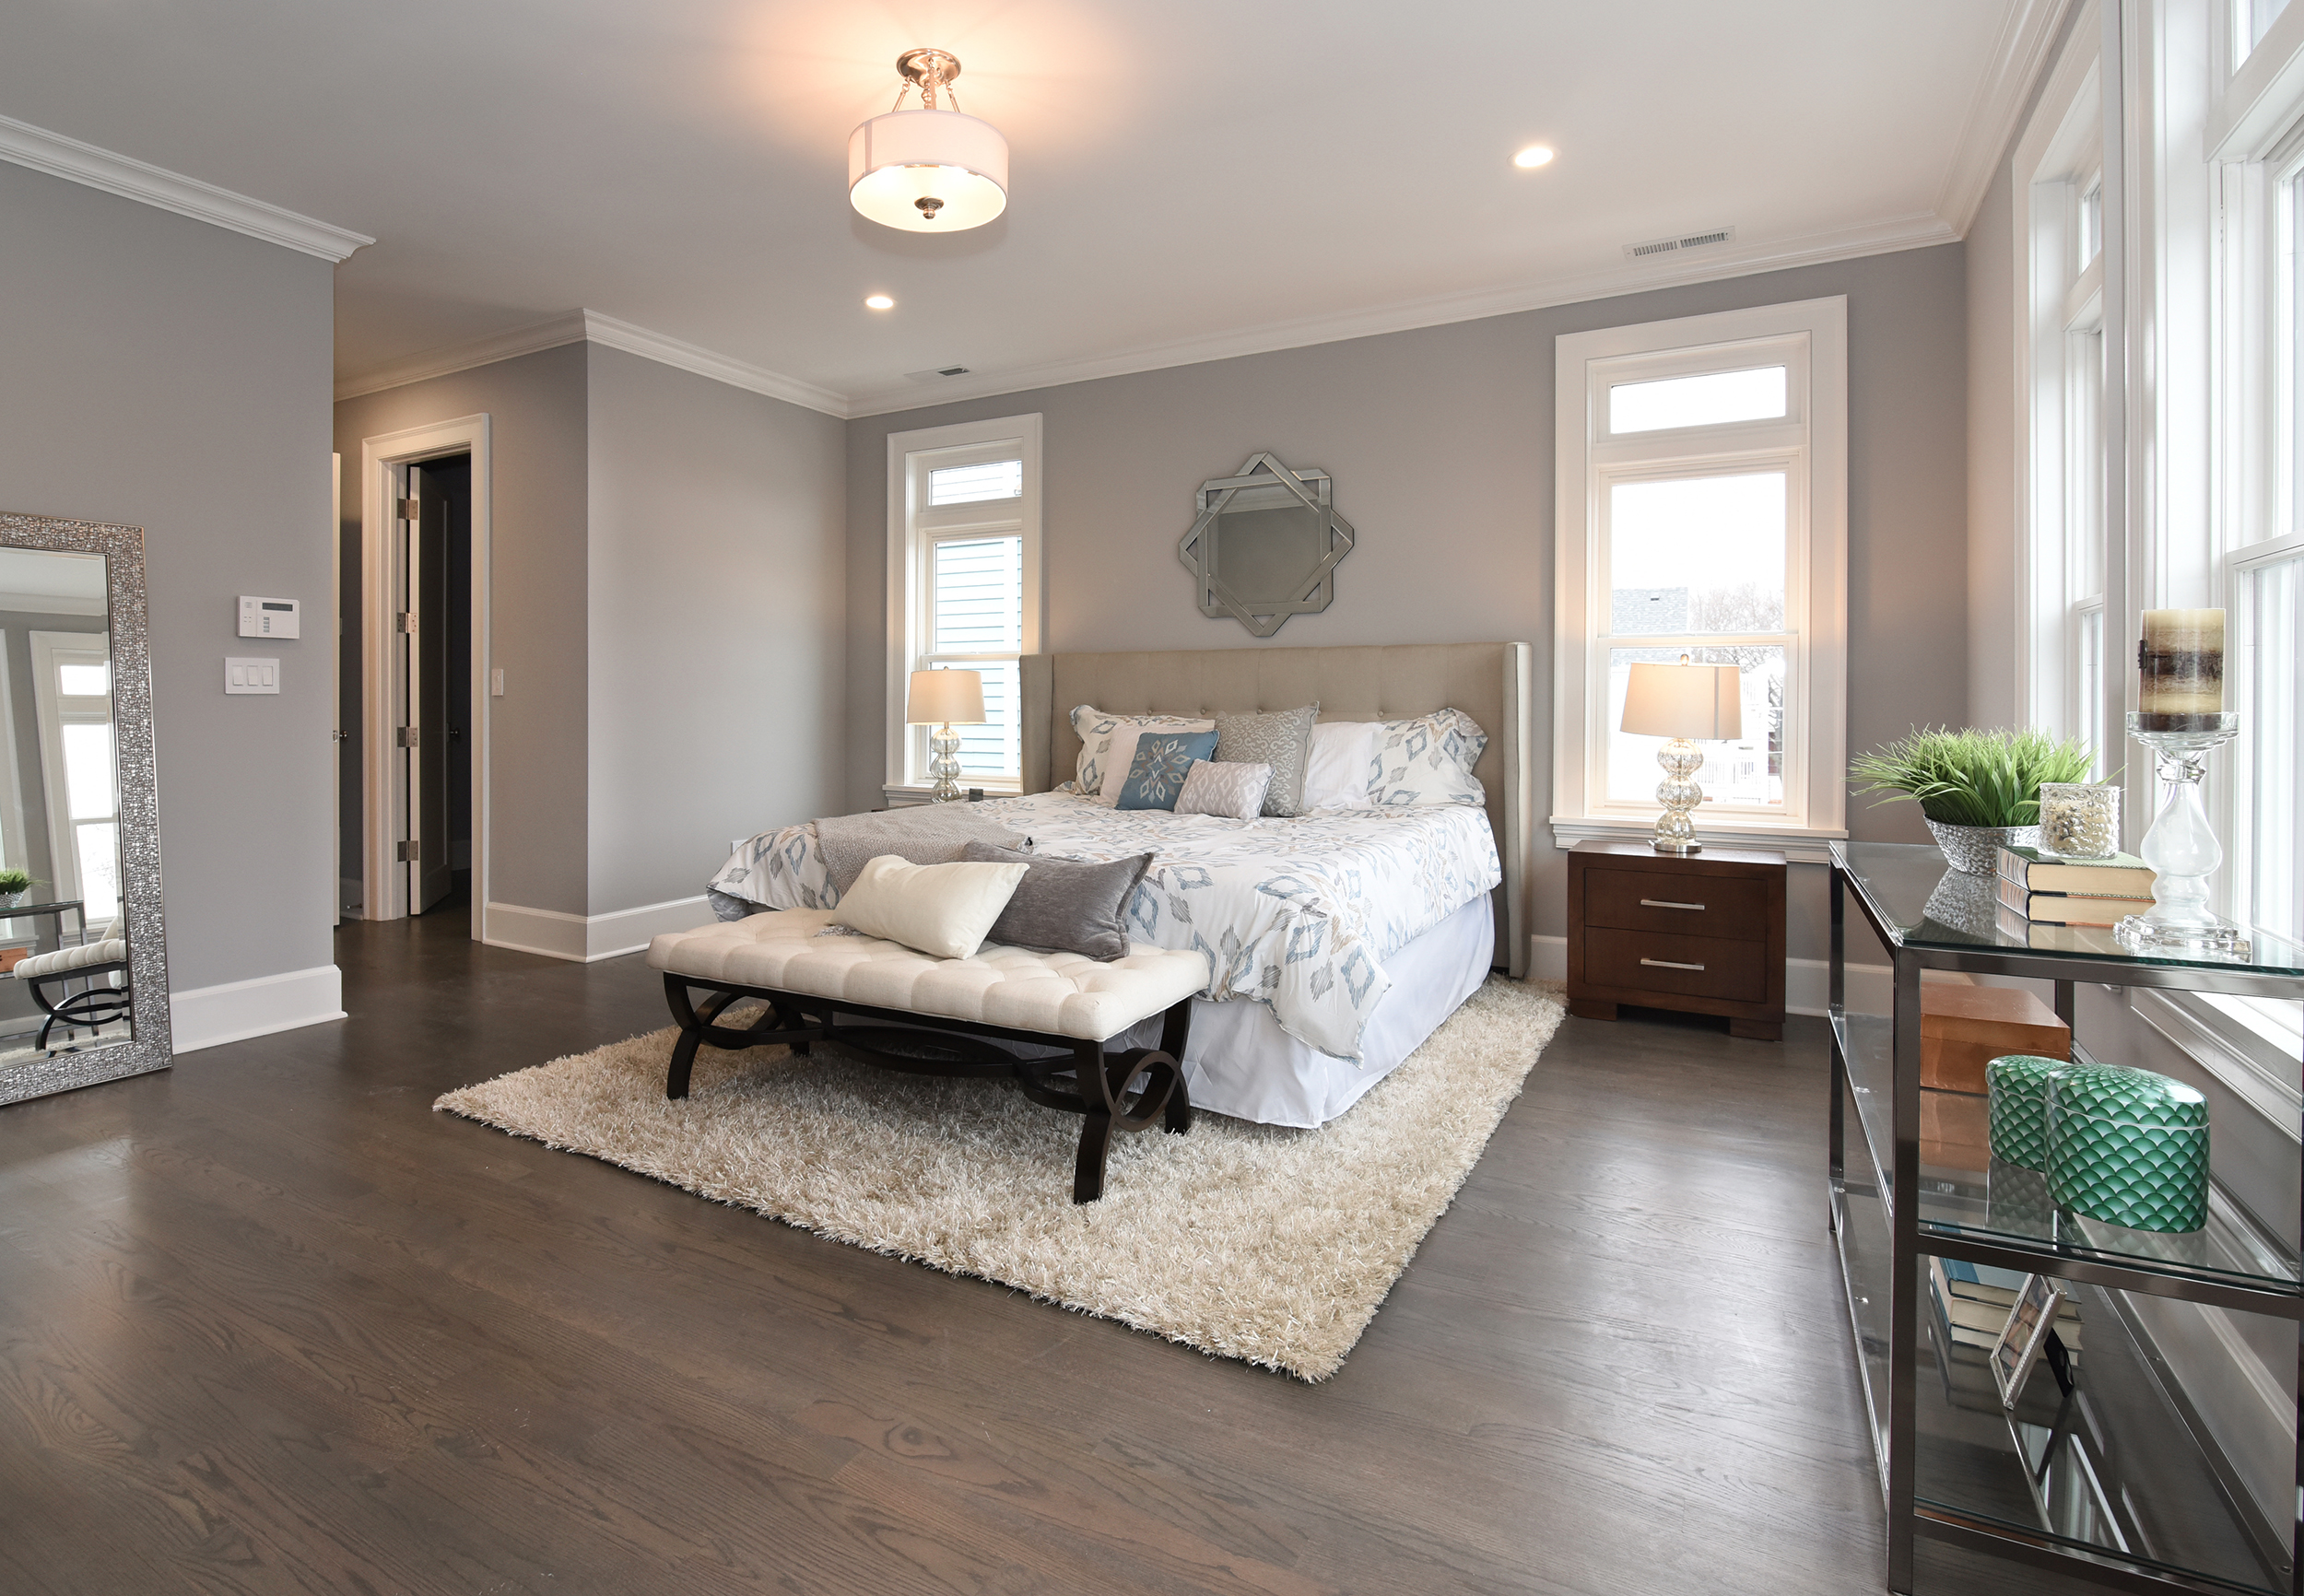 A real world example of a single exposure. A second exposure for the window would have brought in detail but the agent decided that a view of the neighbor's house out the master bedroom window would not help draw potential buyers to the property. Less can often be more..